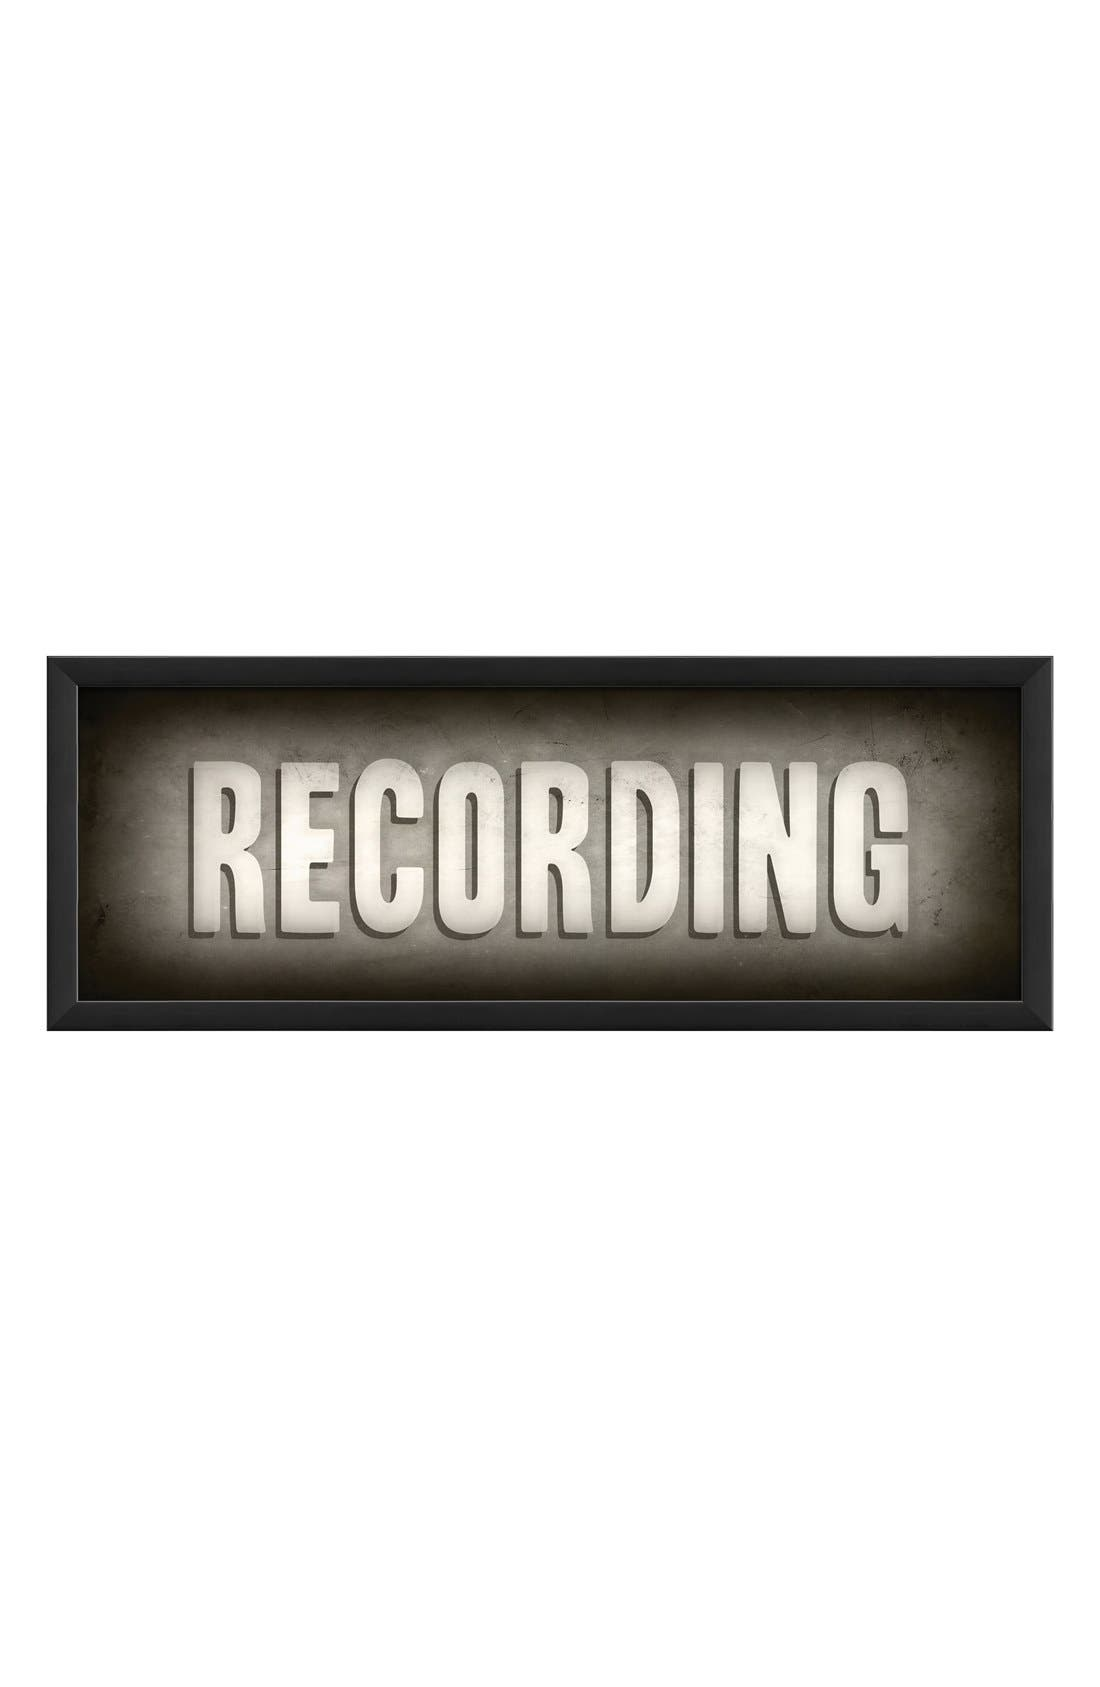 Alternate Image 1 Selected - Spicher and Company 'Recording' Vintage Look Theater Sign Artwork